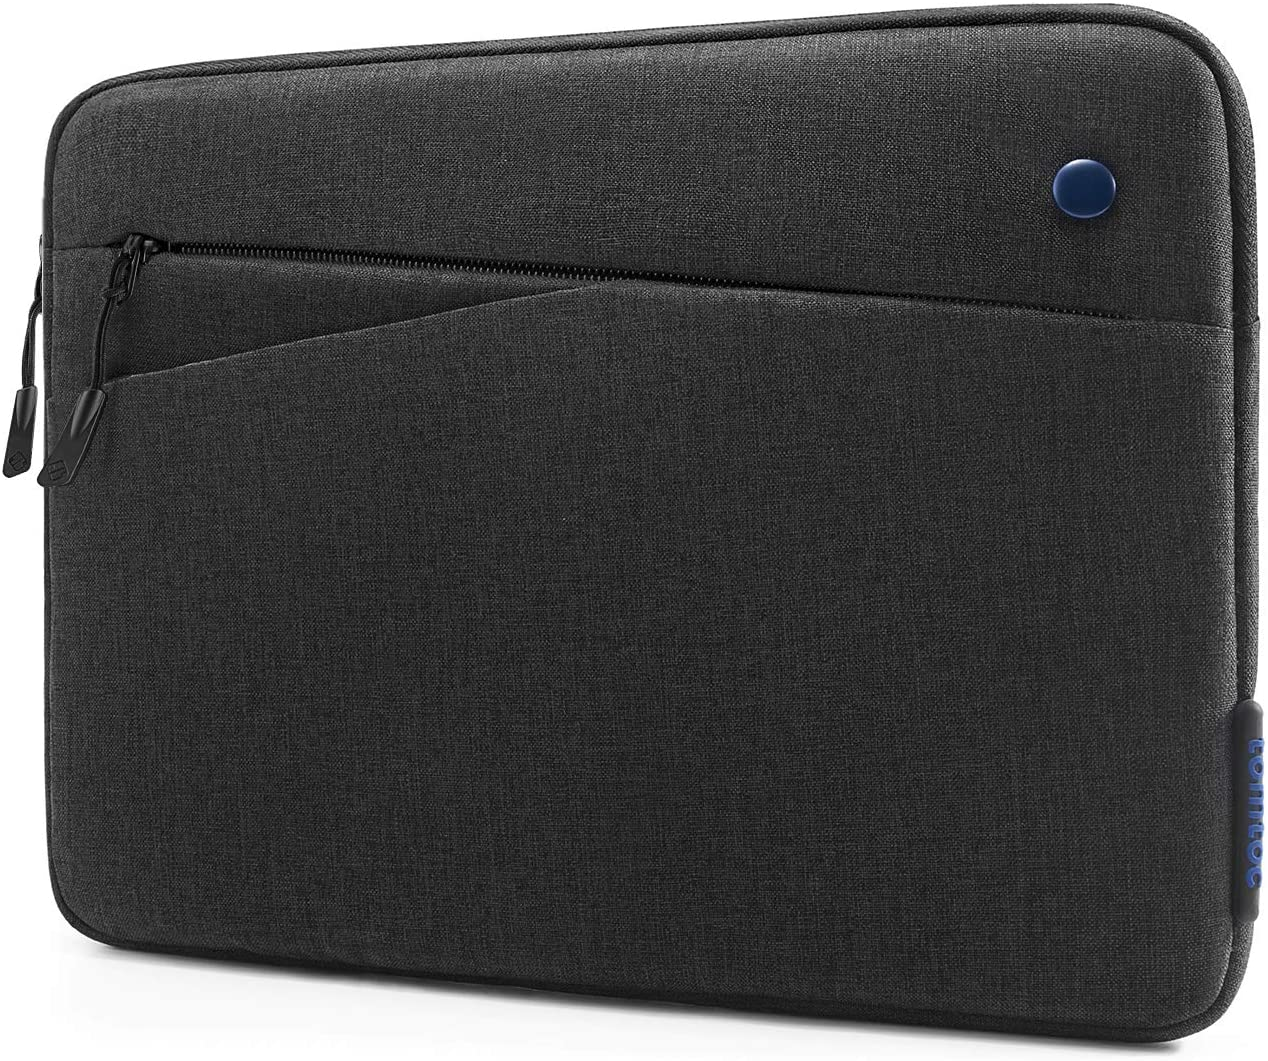 tomtoc Tablet Sleeve Bag for 11-inch New iPad Pro (3rd Gen) M1 5